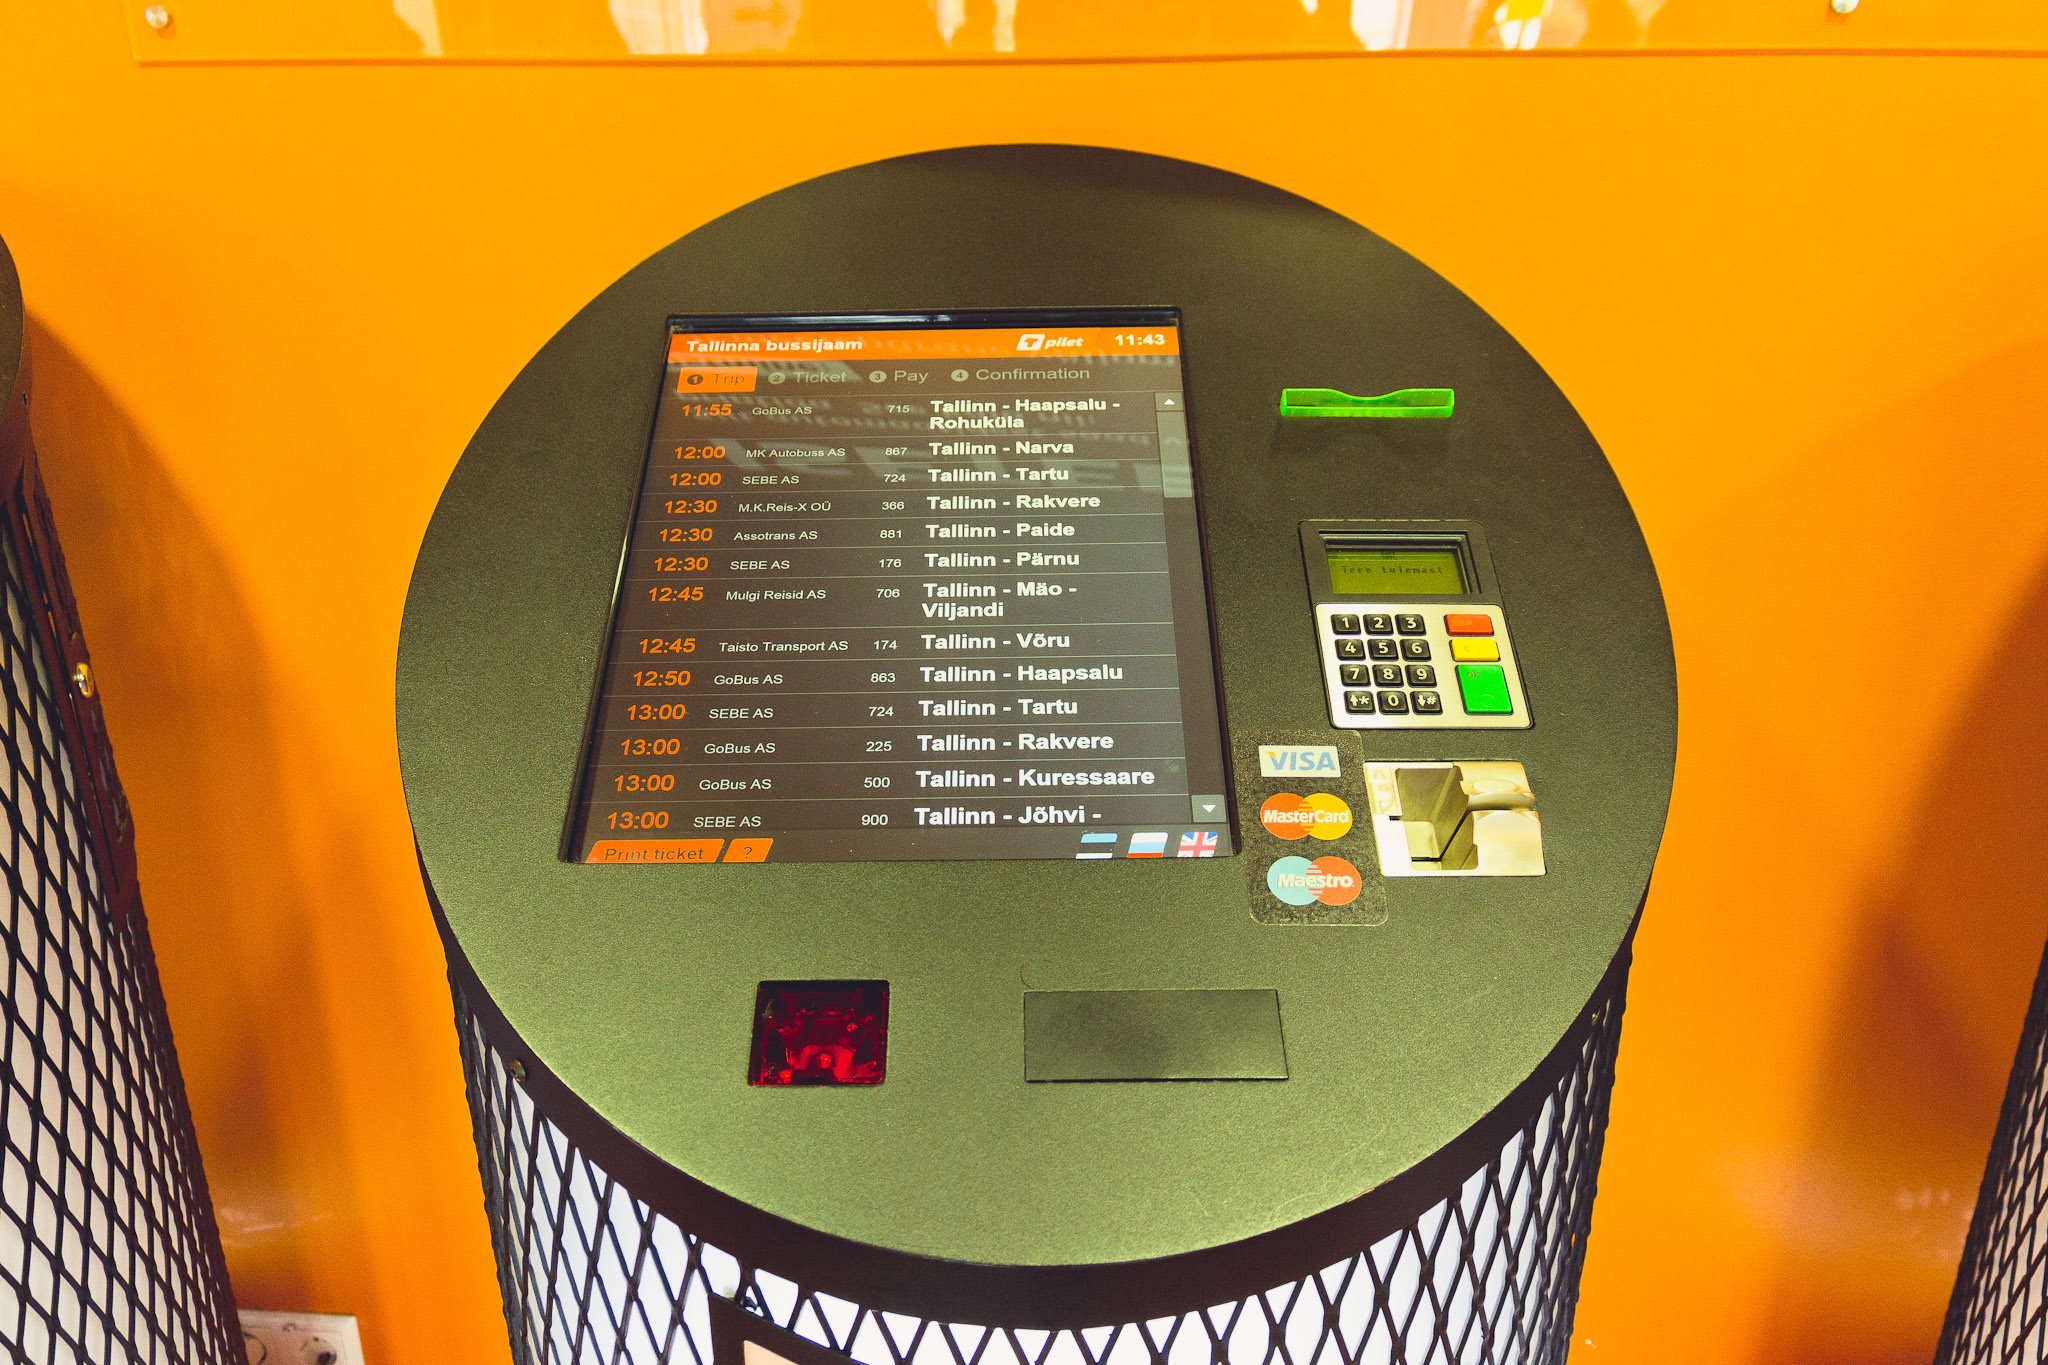 Tallinn bus station Tpilet ticket vending machine